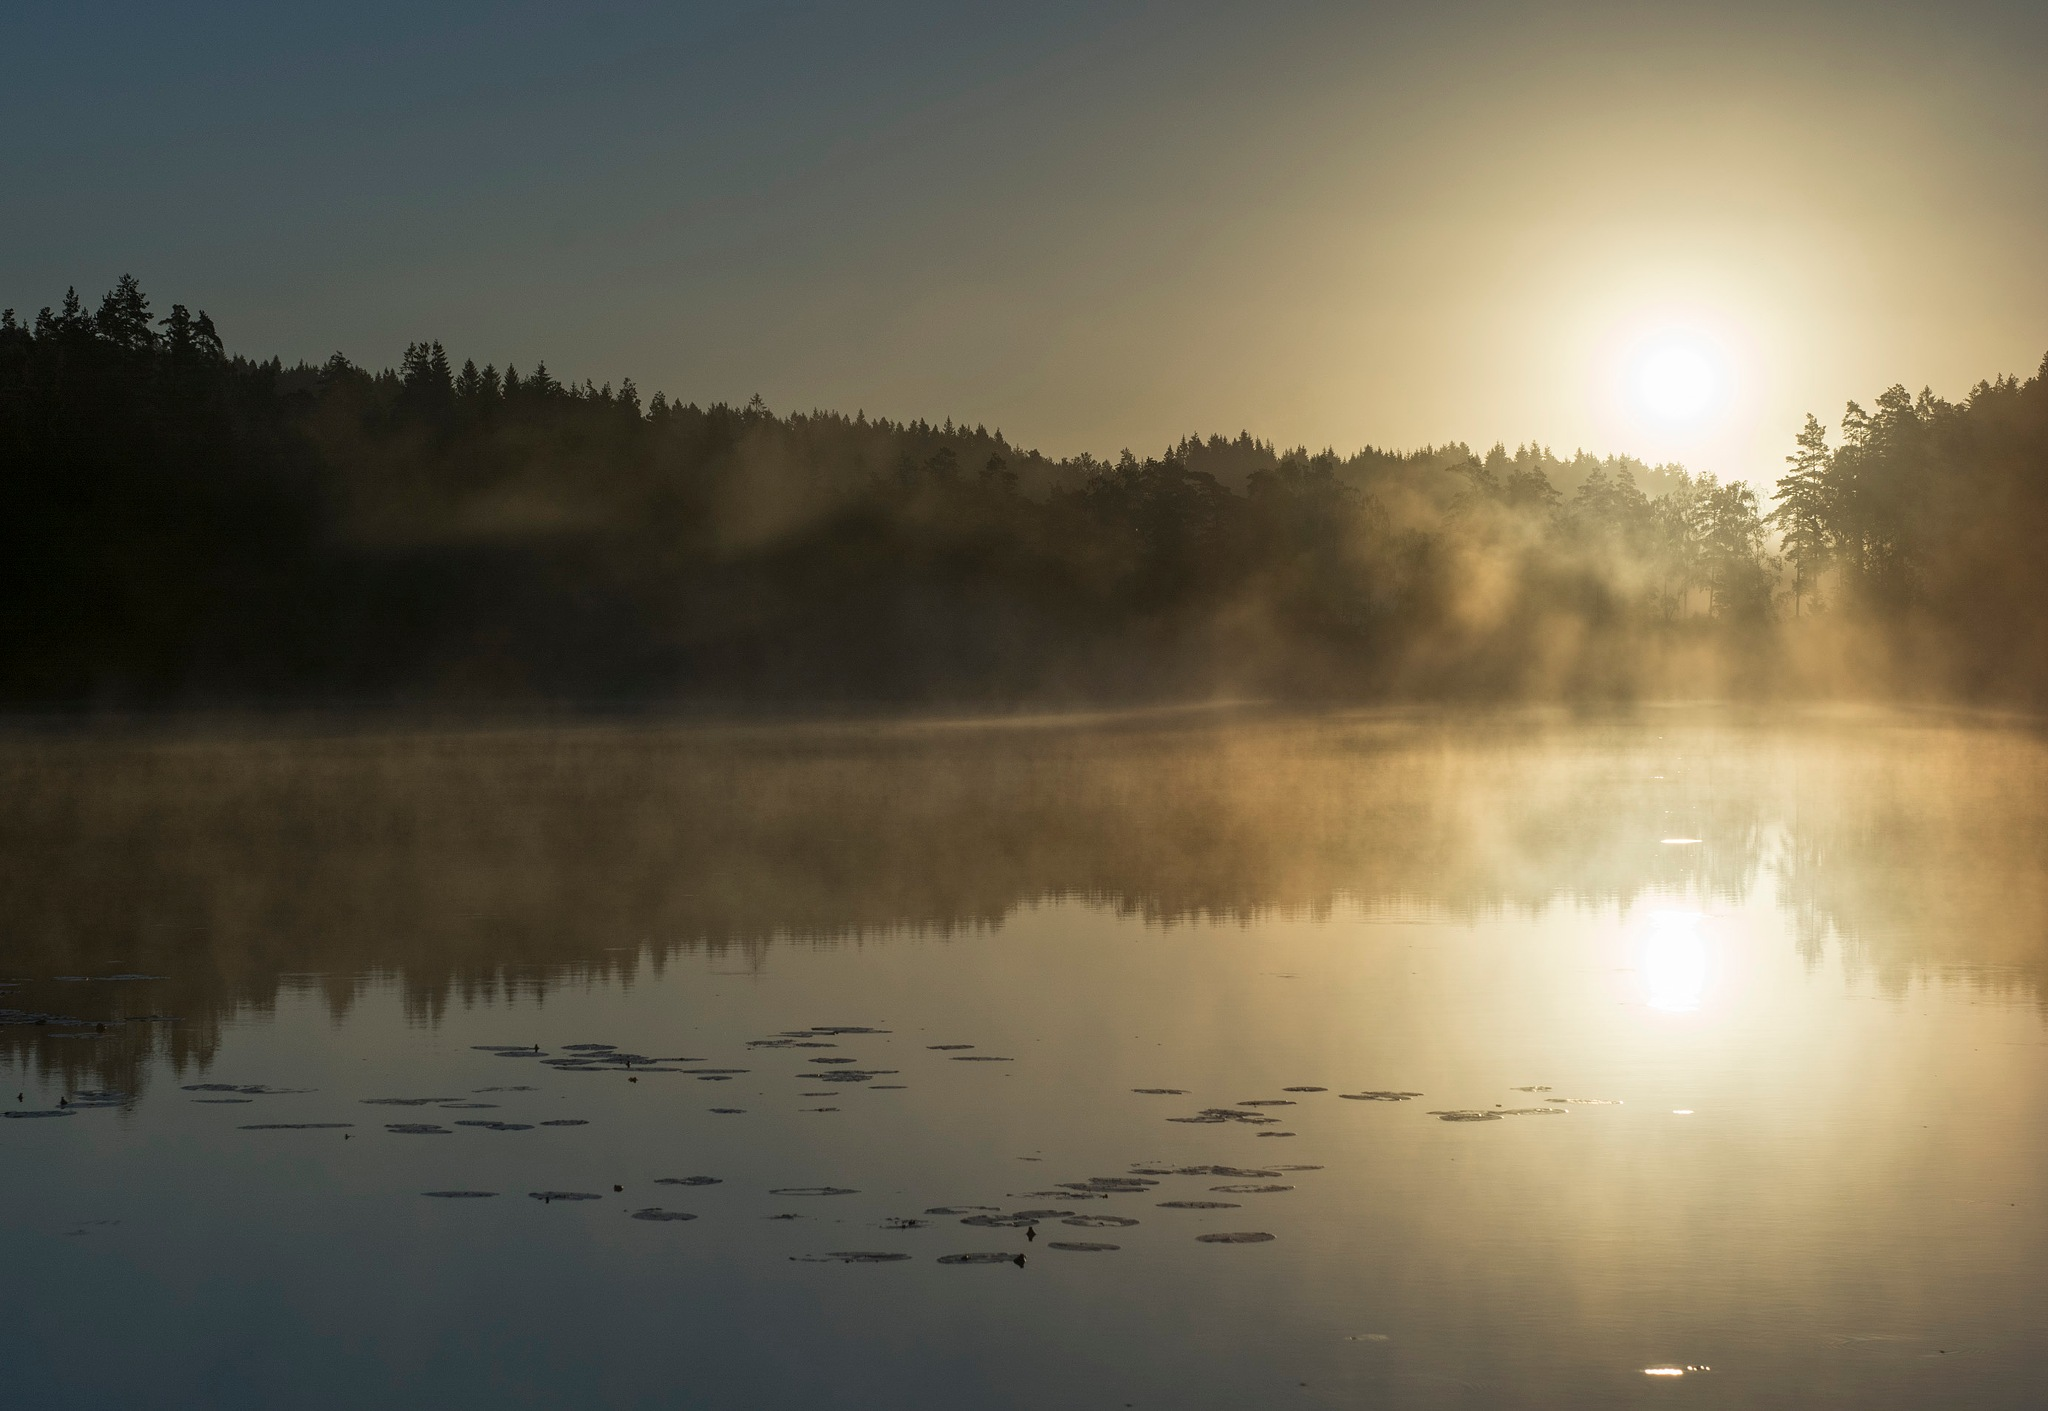 Morning light by Linda Persson